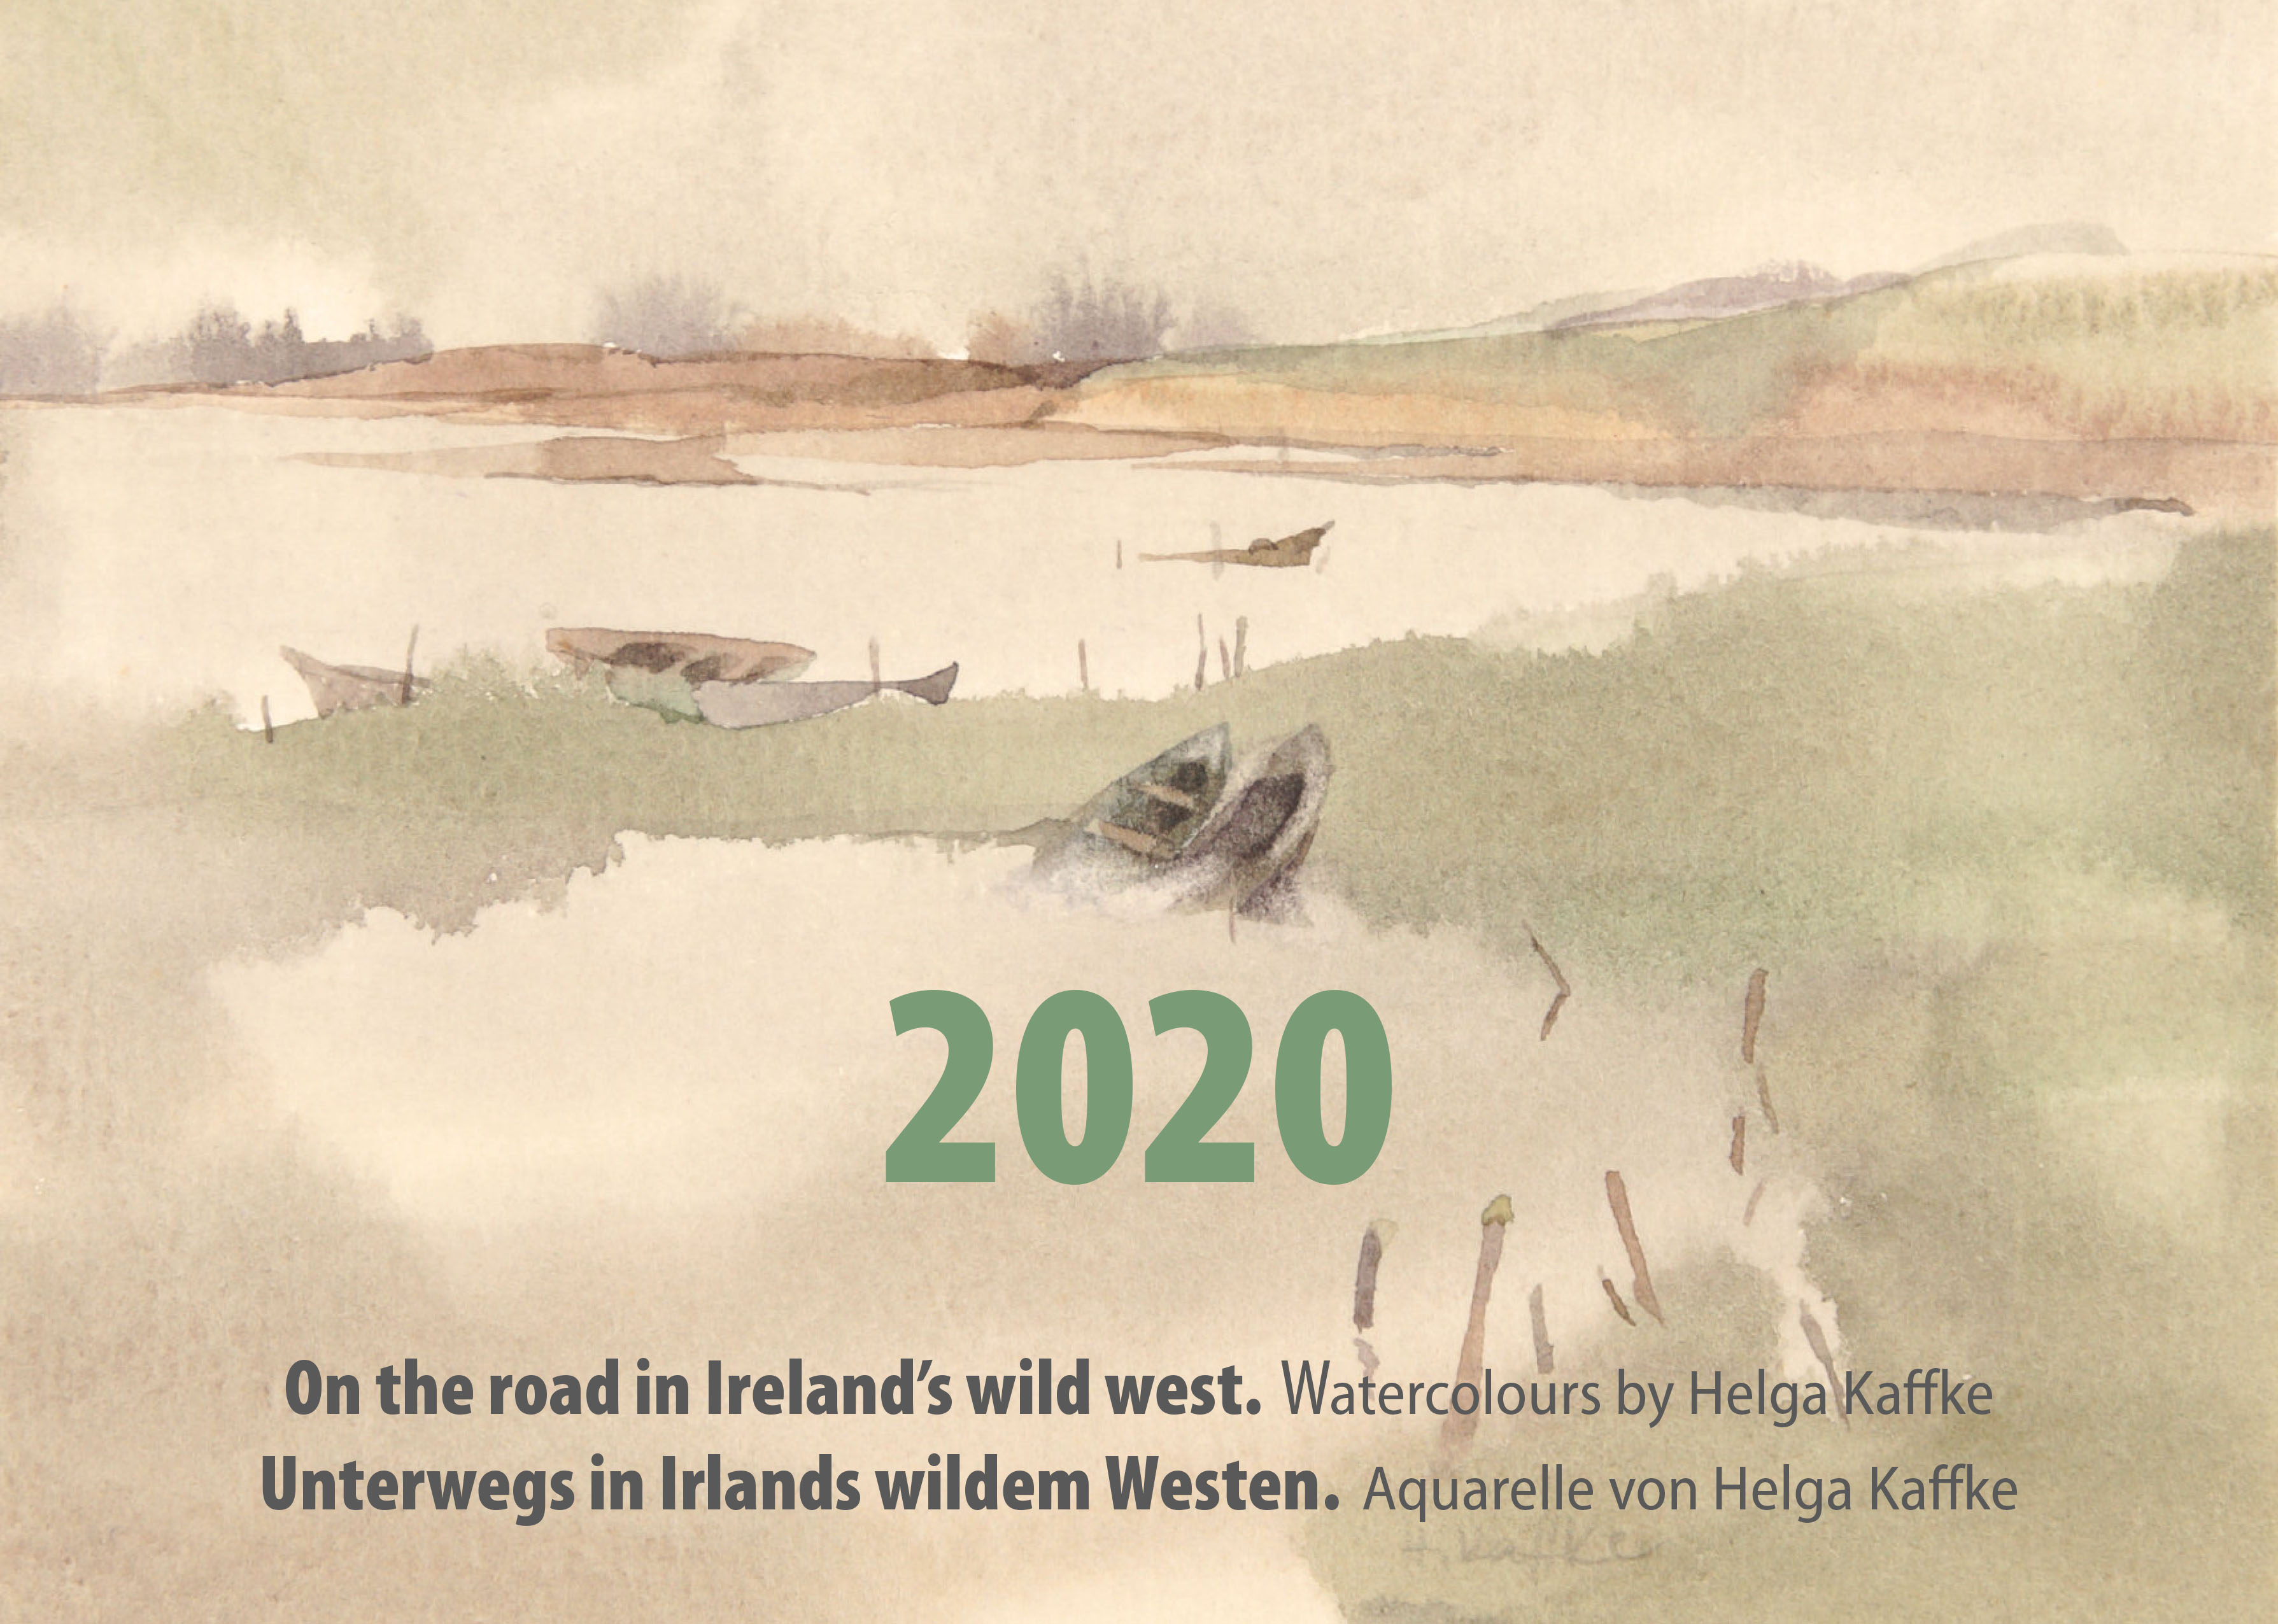 Unterwegs in Irlands wildem Westen/On the road in Ireland's wild west. Kalender 2020 von Helga Kaffke